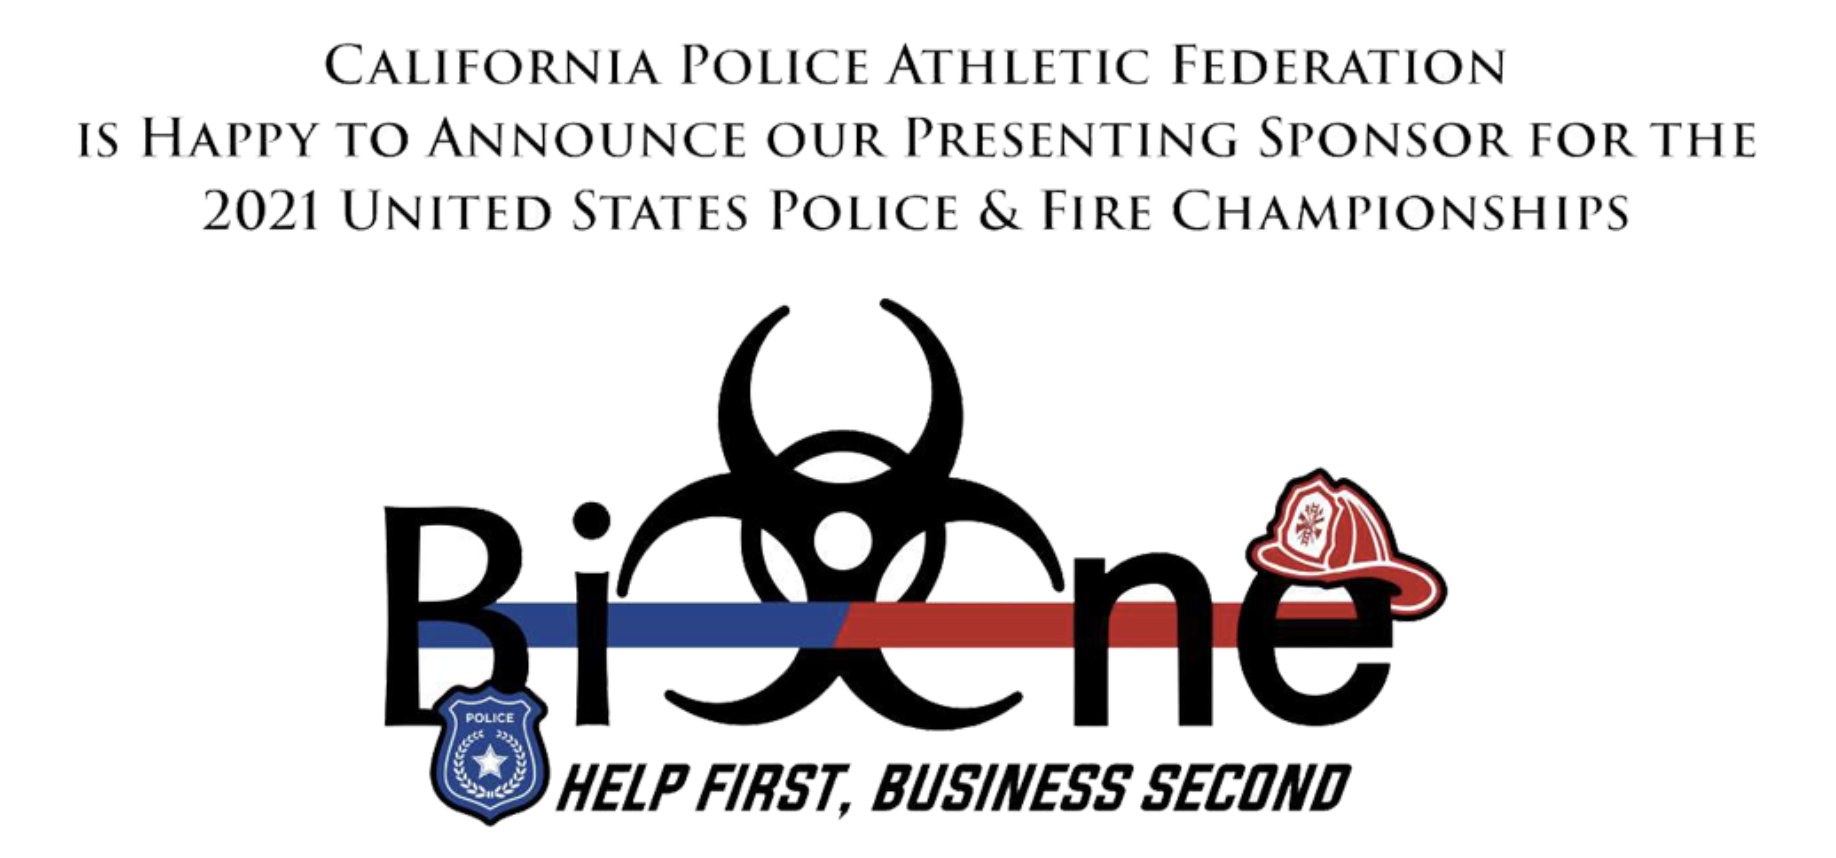 U.S. Police and Fire Championships Presenting Sponsor